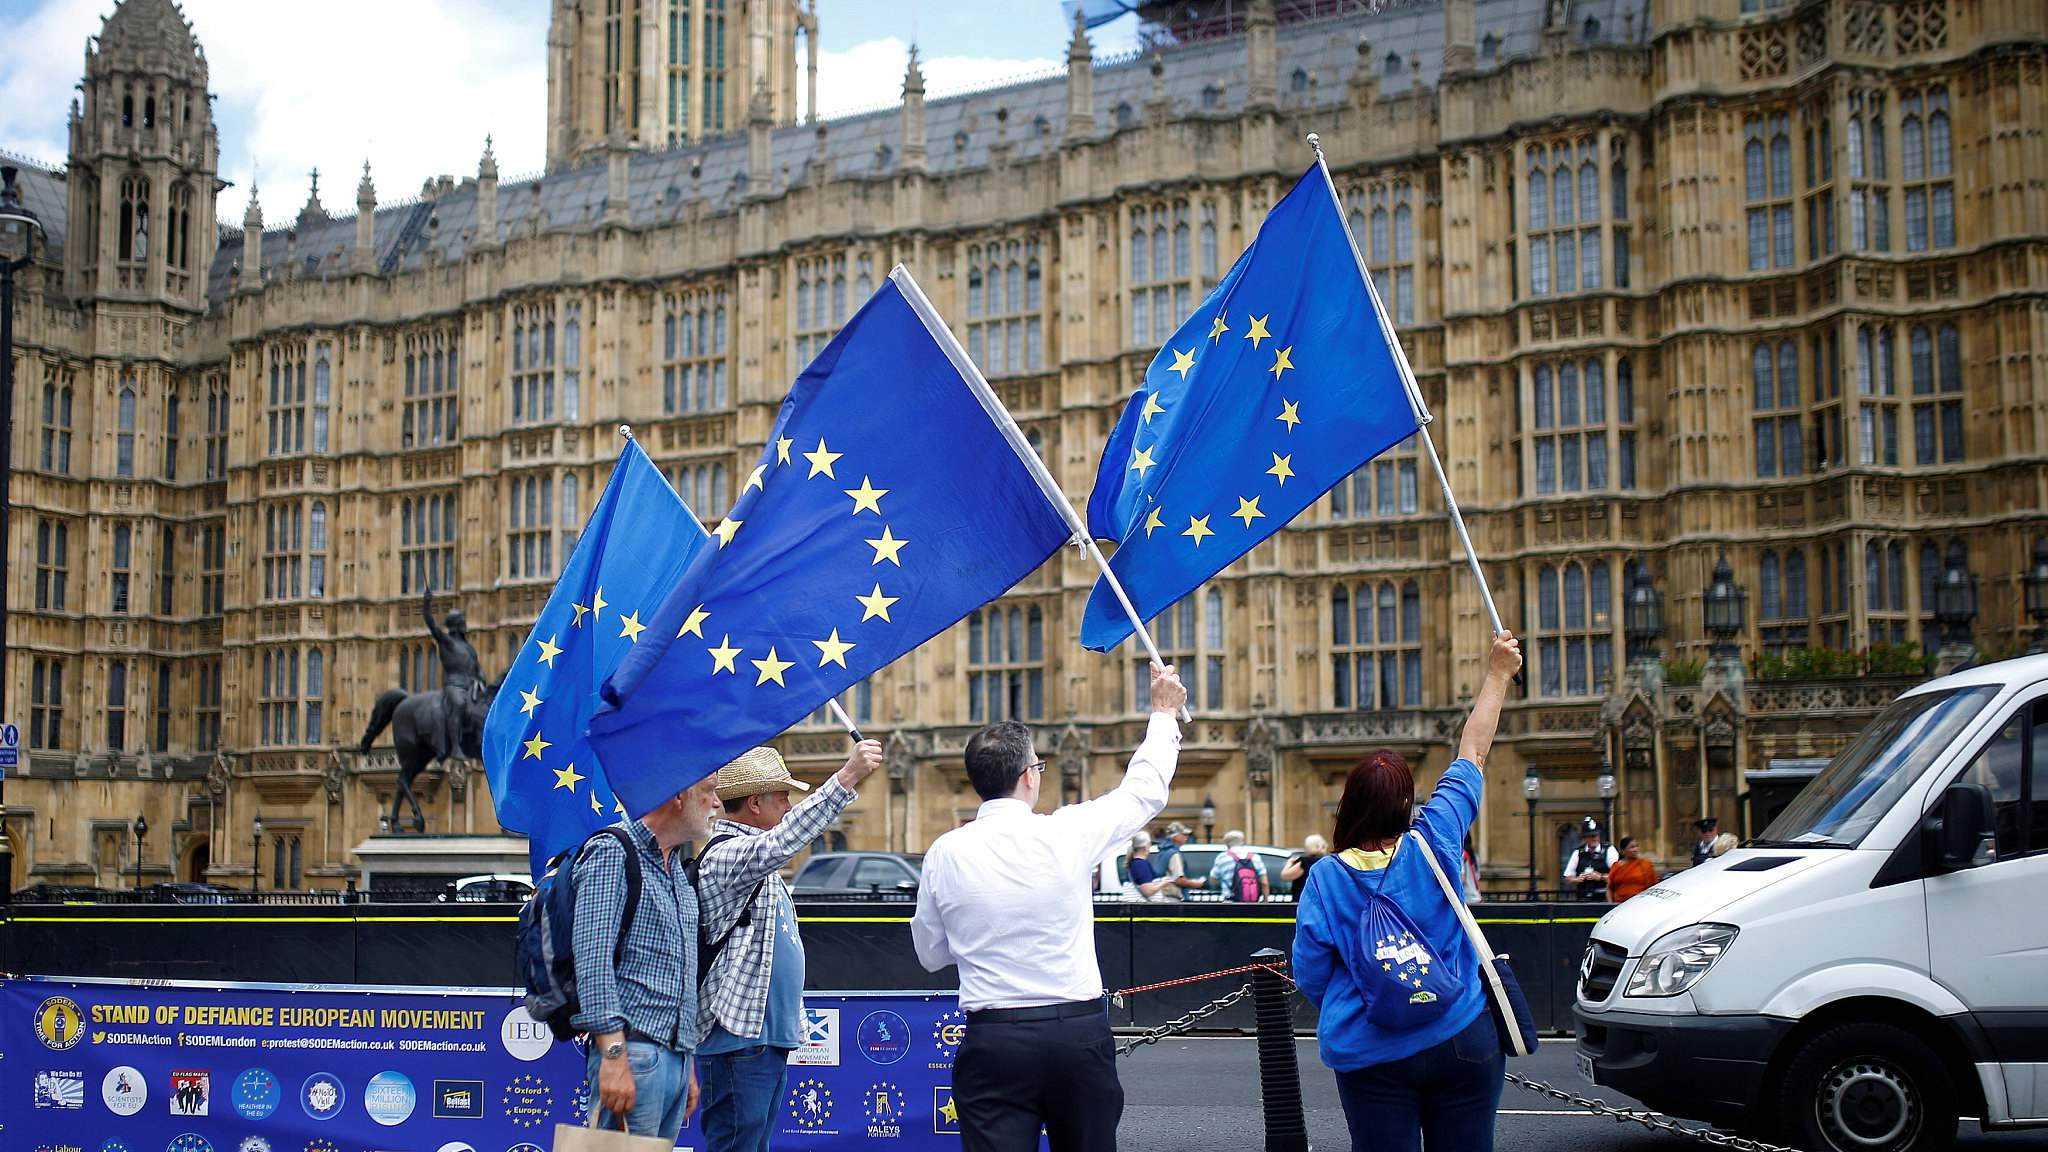 Post-Brexit, western democracies face the real test of history